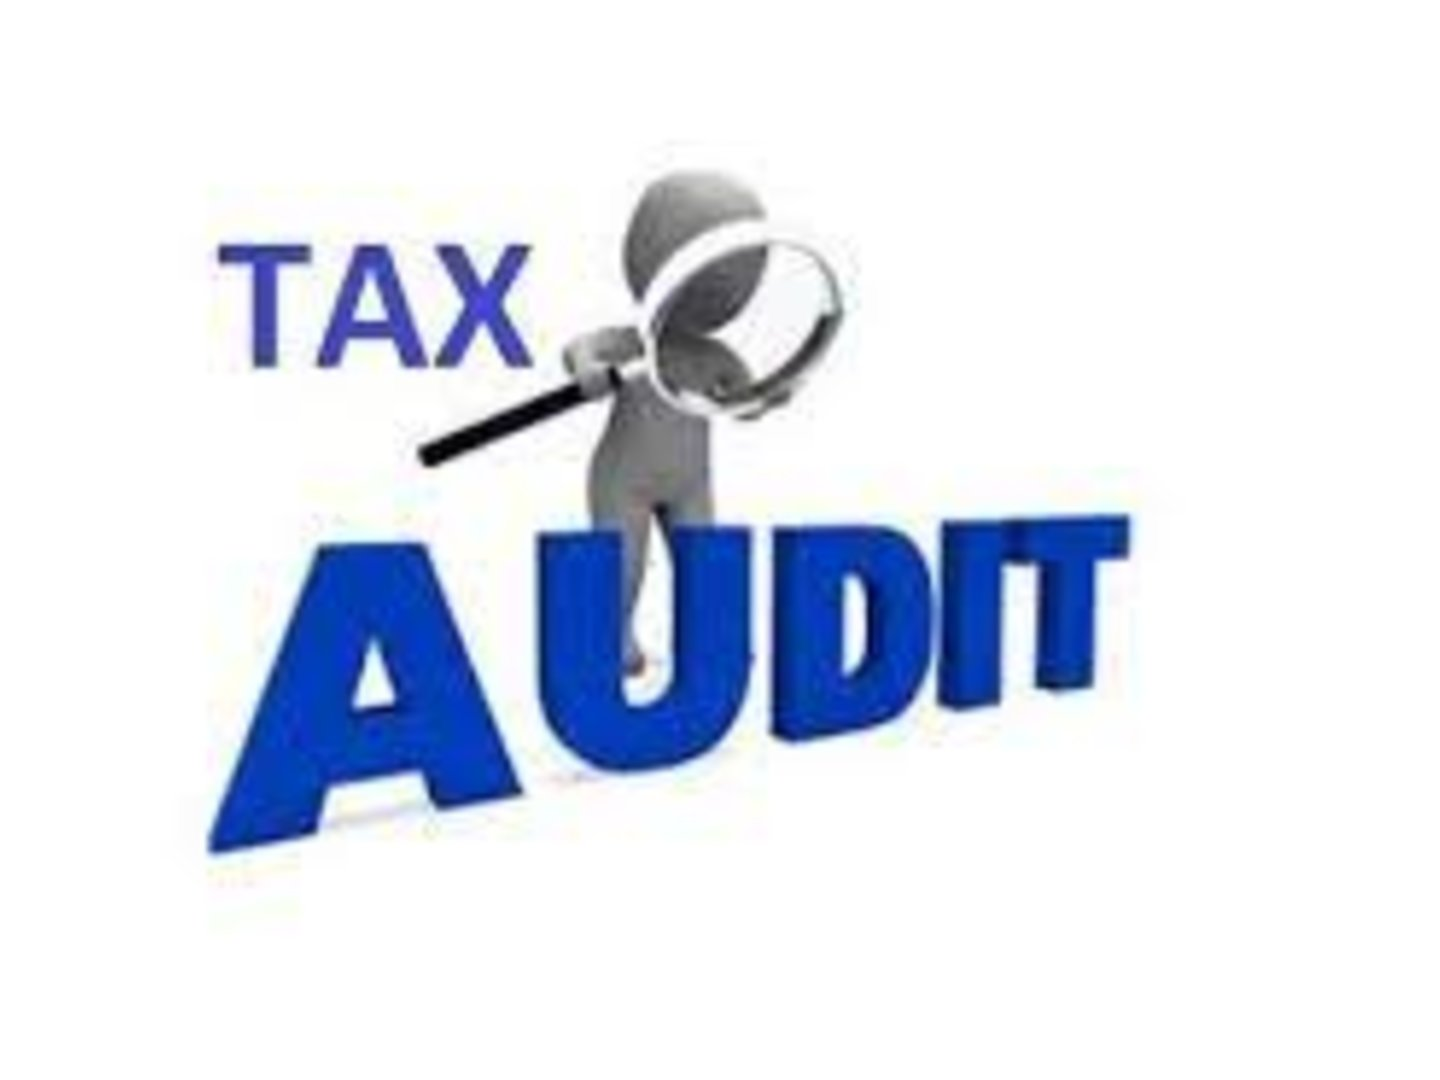 If you are selected to be audited, your accountant's fees can be as much as four to five times greater than the fee charged for the original work. This is an insurance policy that reimburses the professional fees that you incur from your accountant to assist you with the audit process.